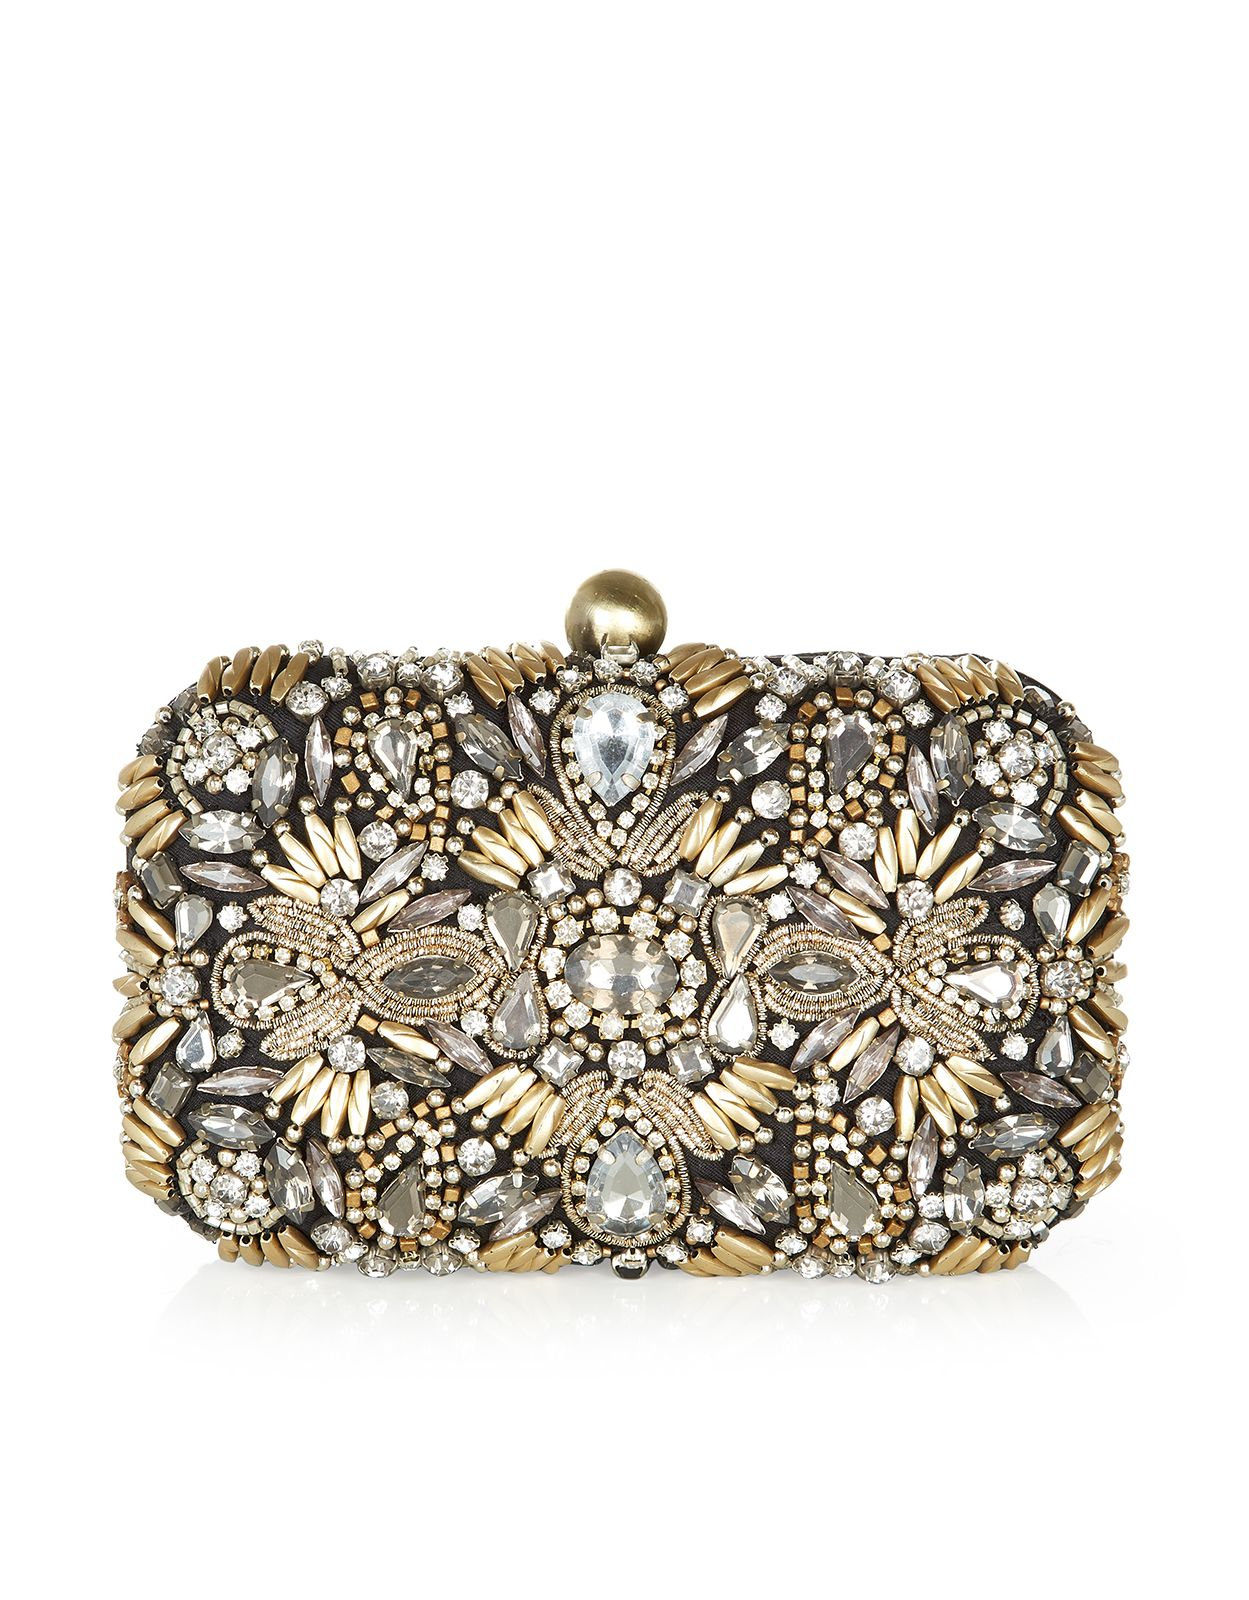 Lexi Hardcase Clutch Bag | Multi | Accessorize | The bride ...